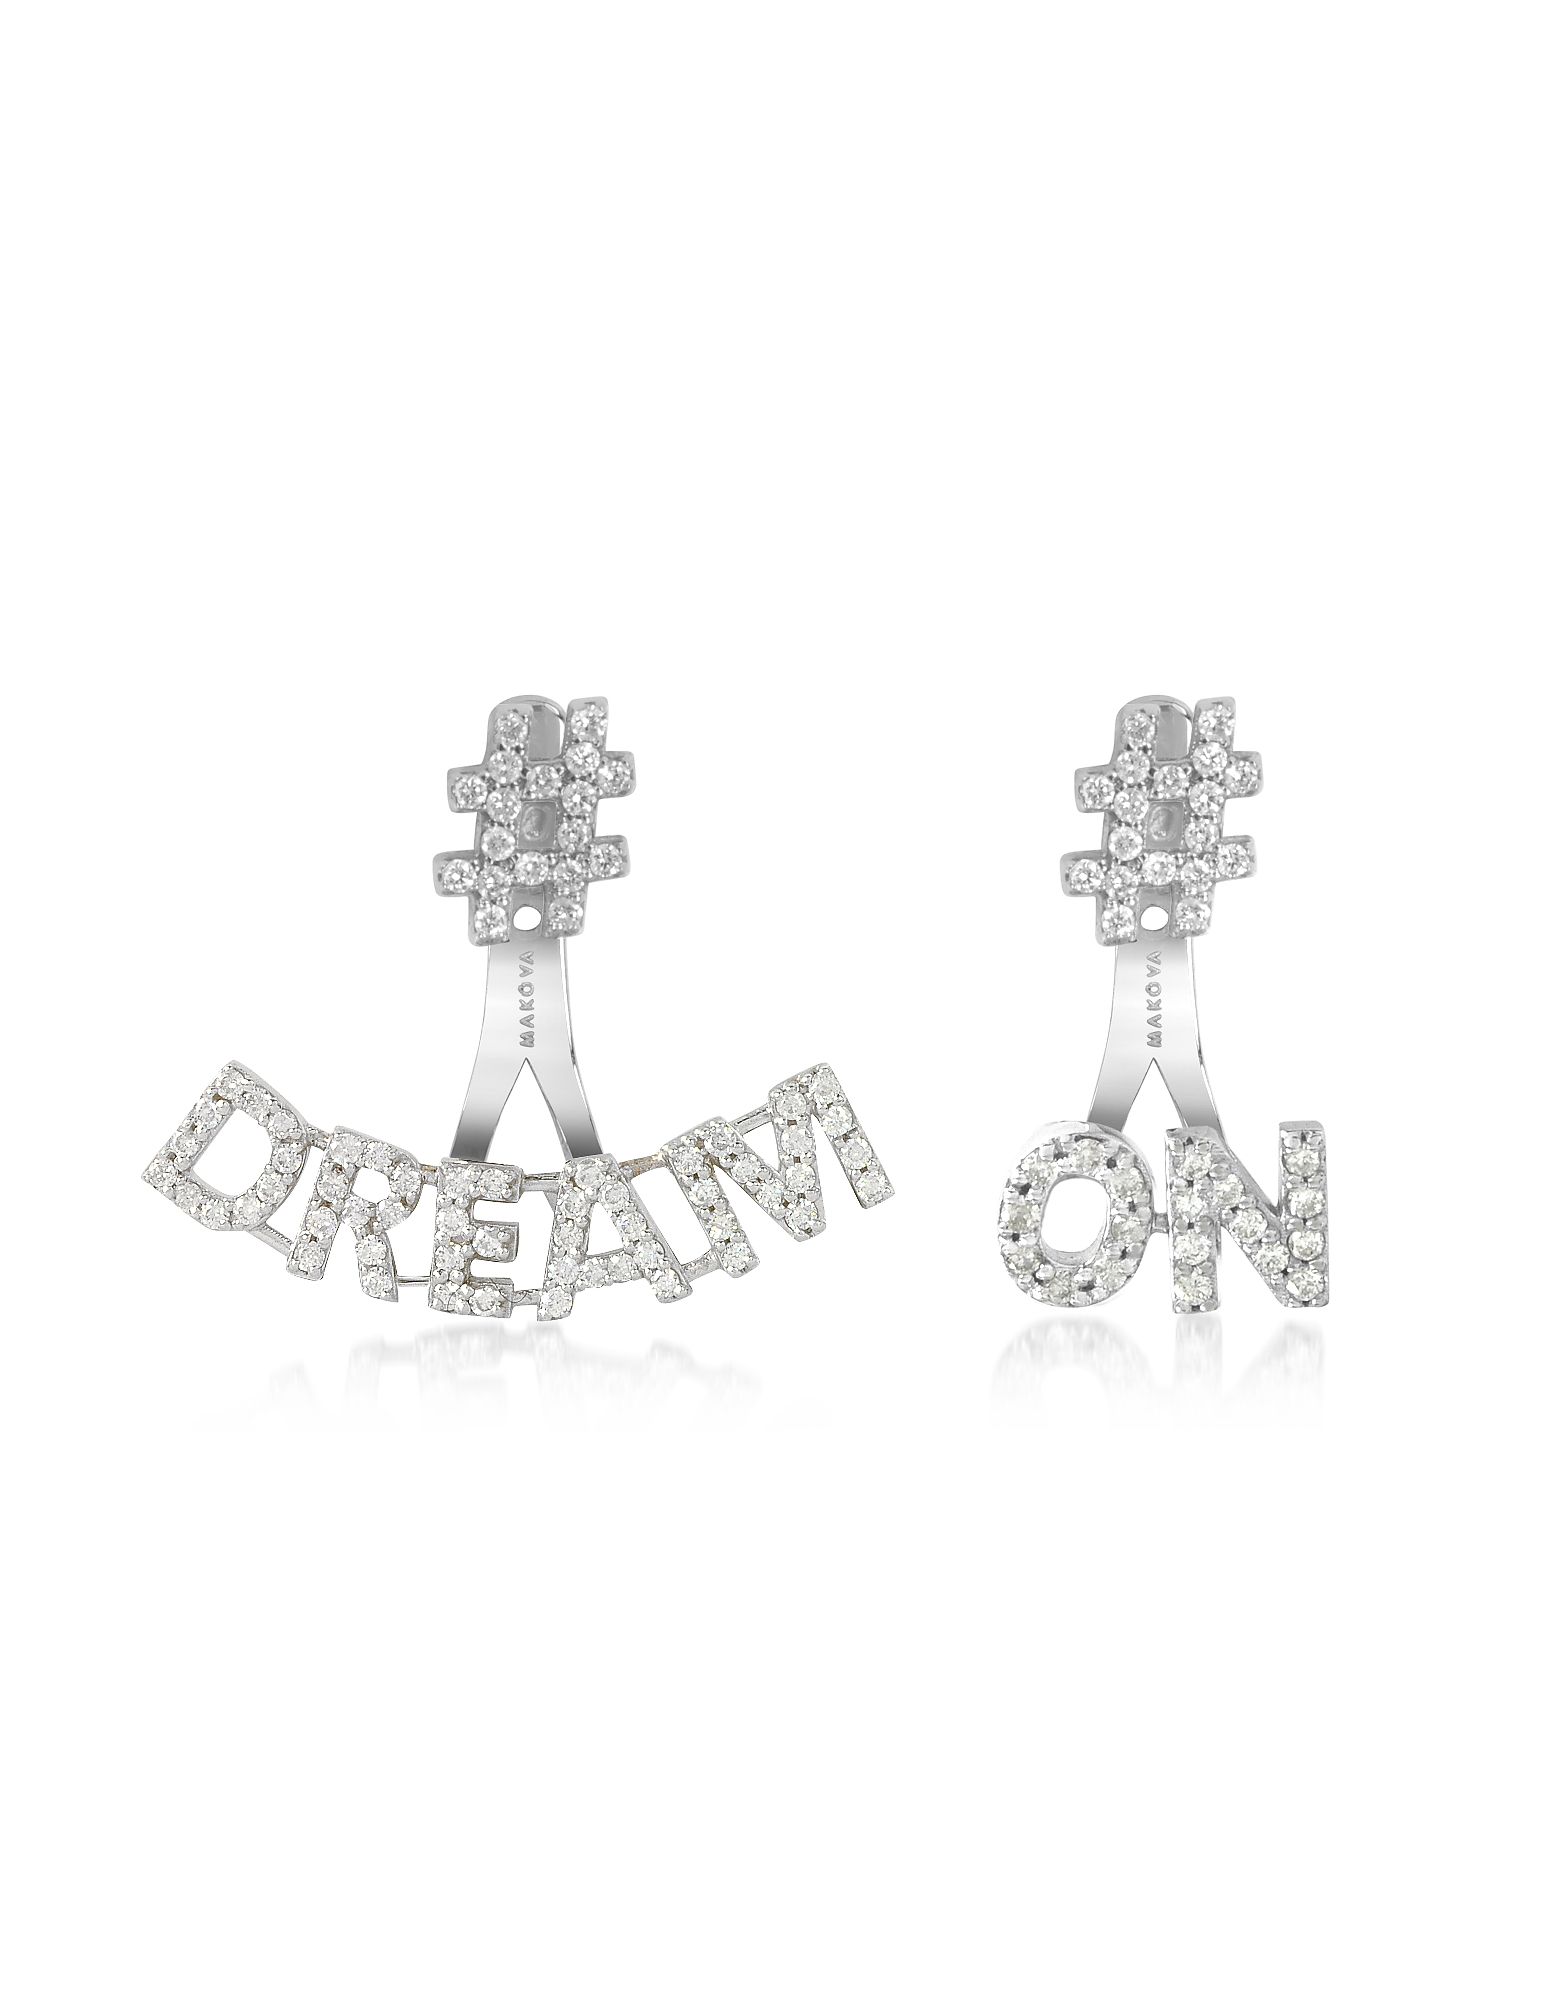 Makova Jewelry Designer Earrings, #Dream #On 18K Gold & 0.82 ctw Diamonds Earrings